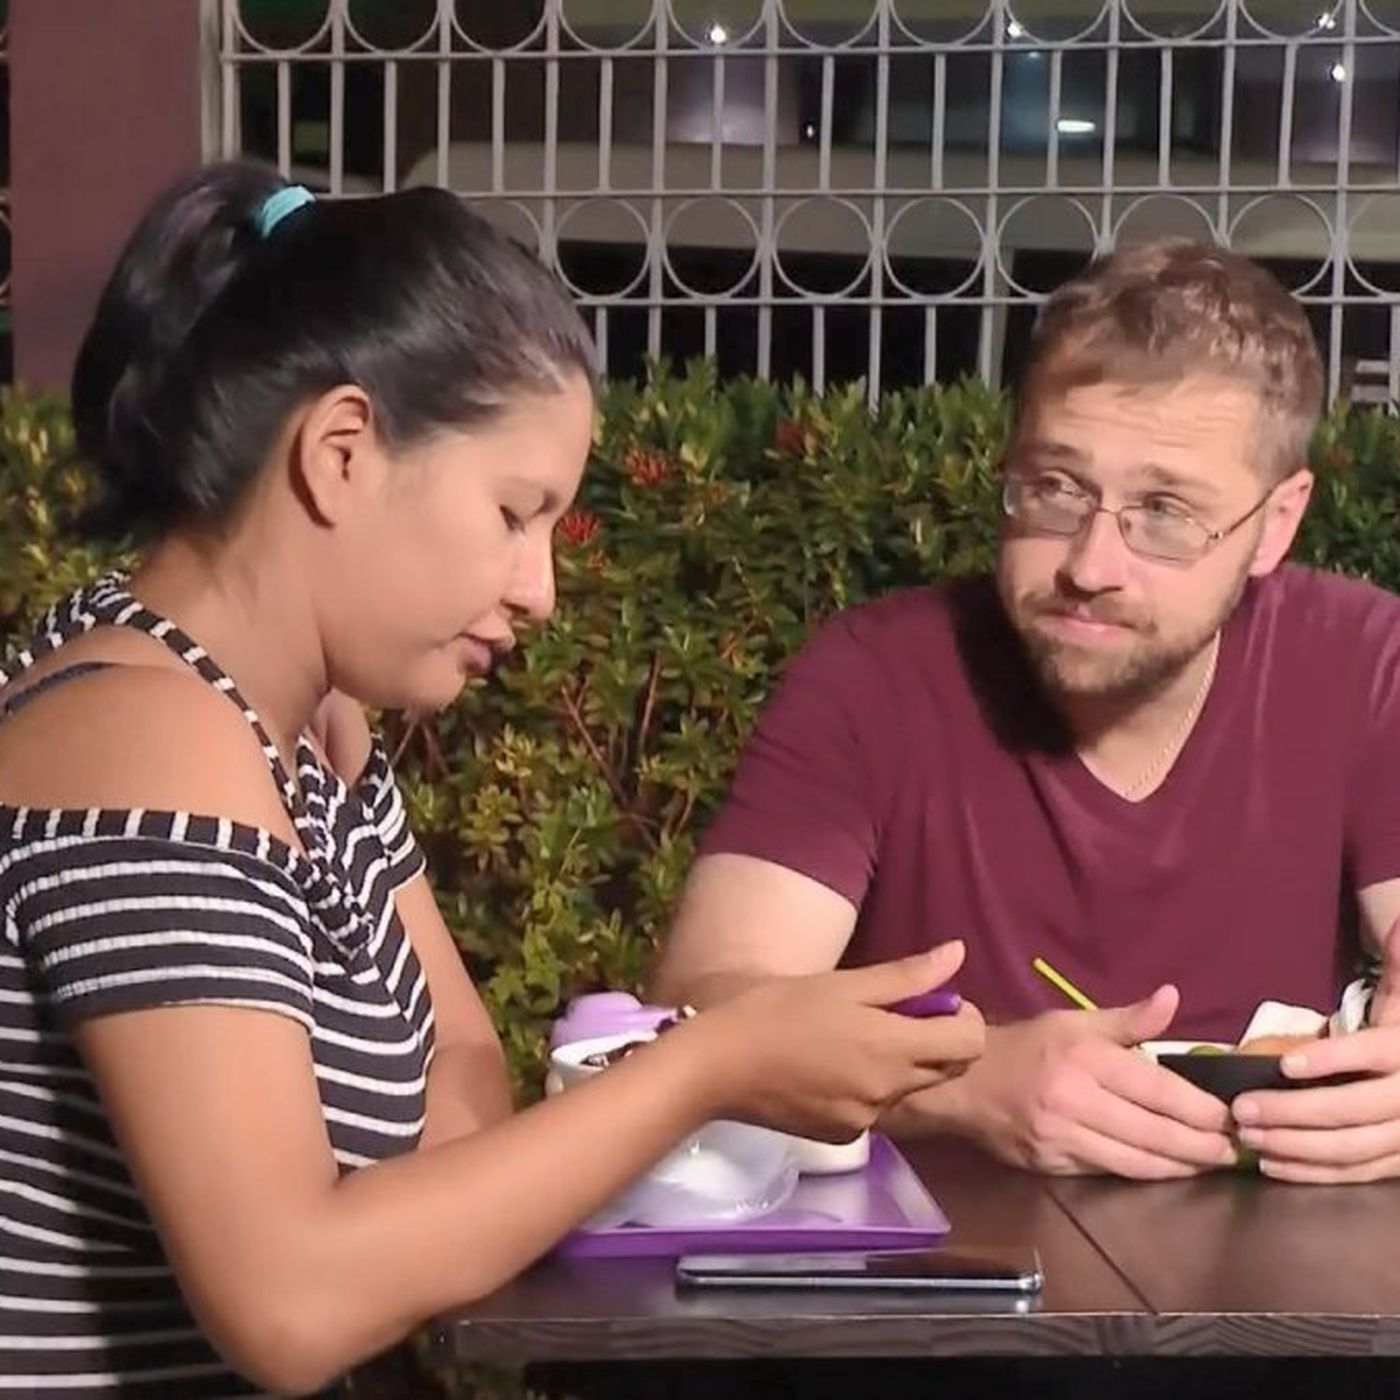 90 Day Fiancé: There's So Much Friggin' Content - Funny Or Die